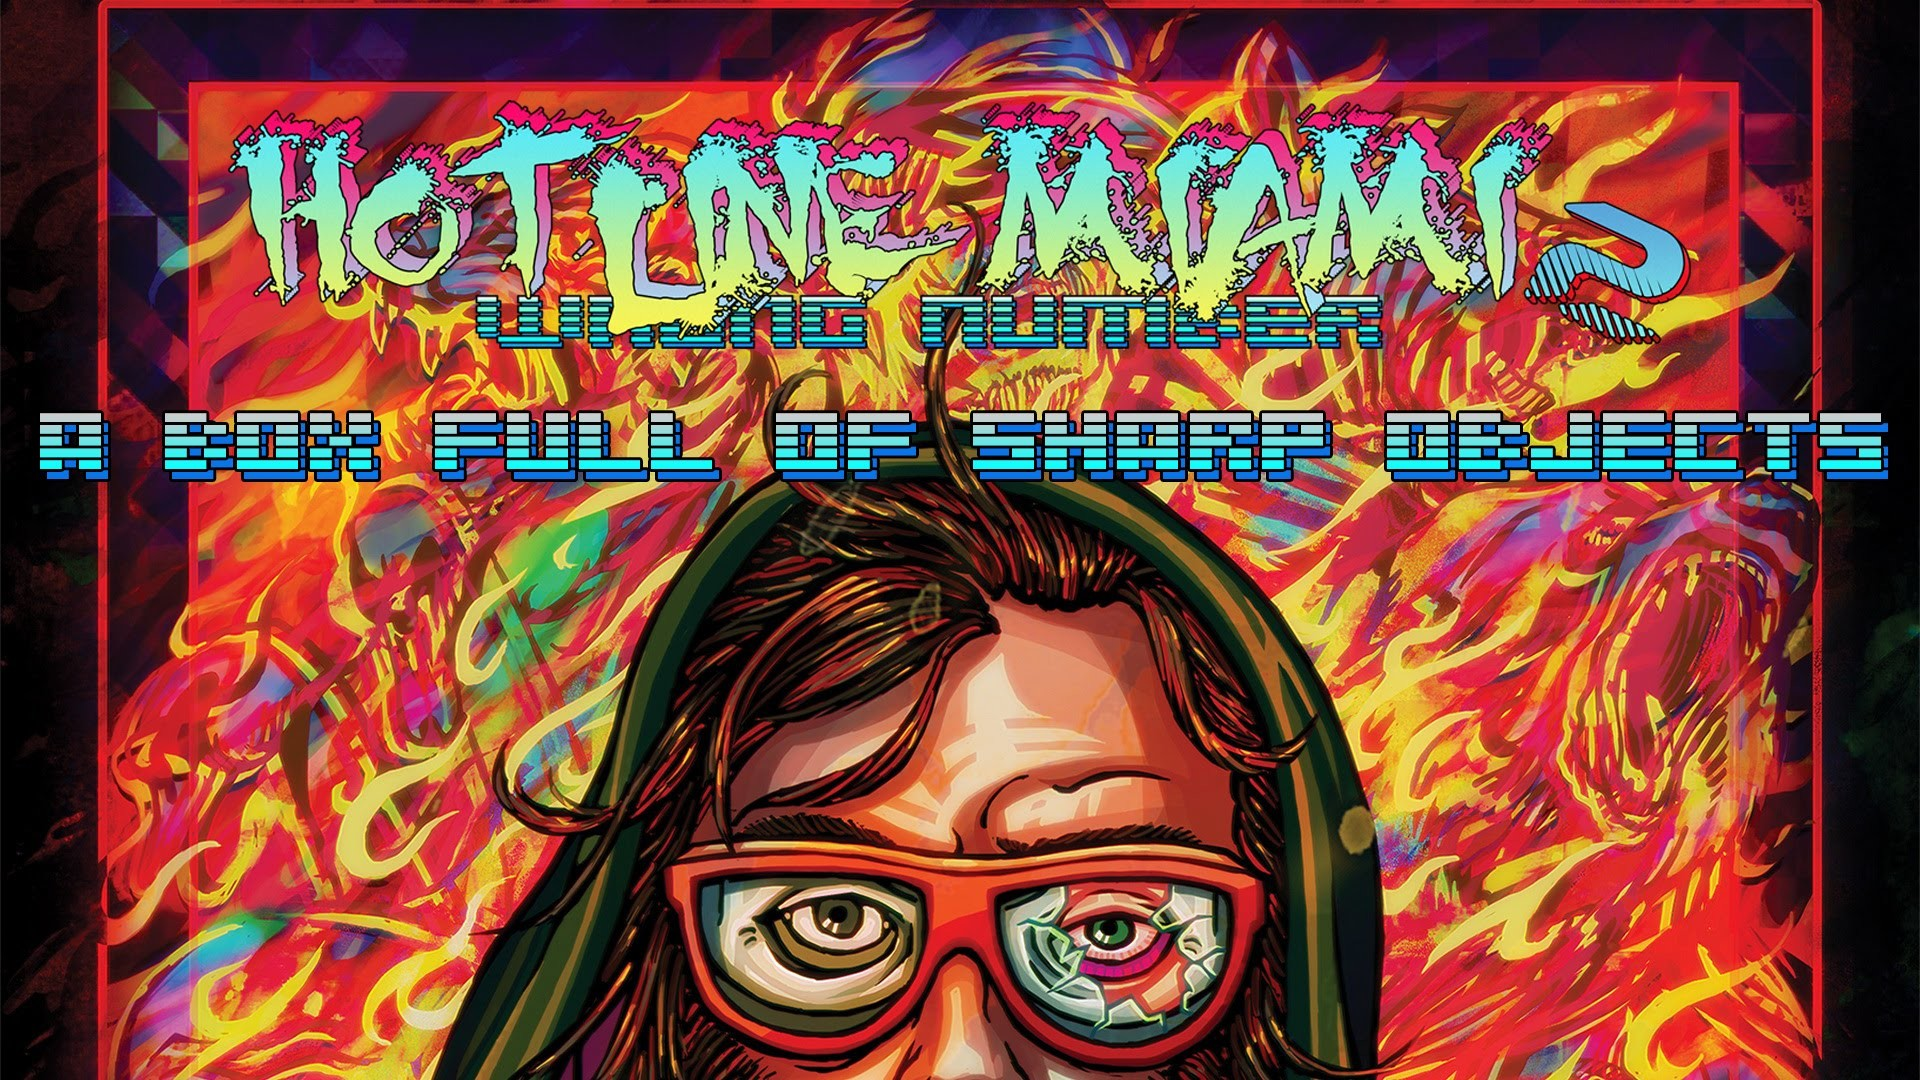 Hotline Miami 2 : Wrong Number – A box full of sharp objects